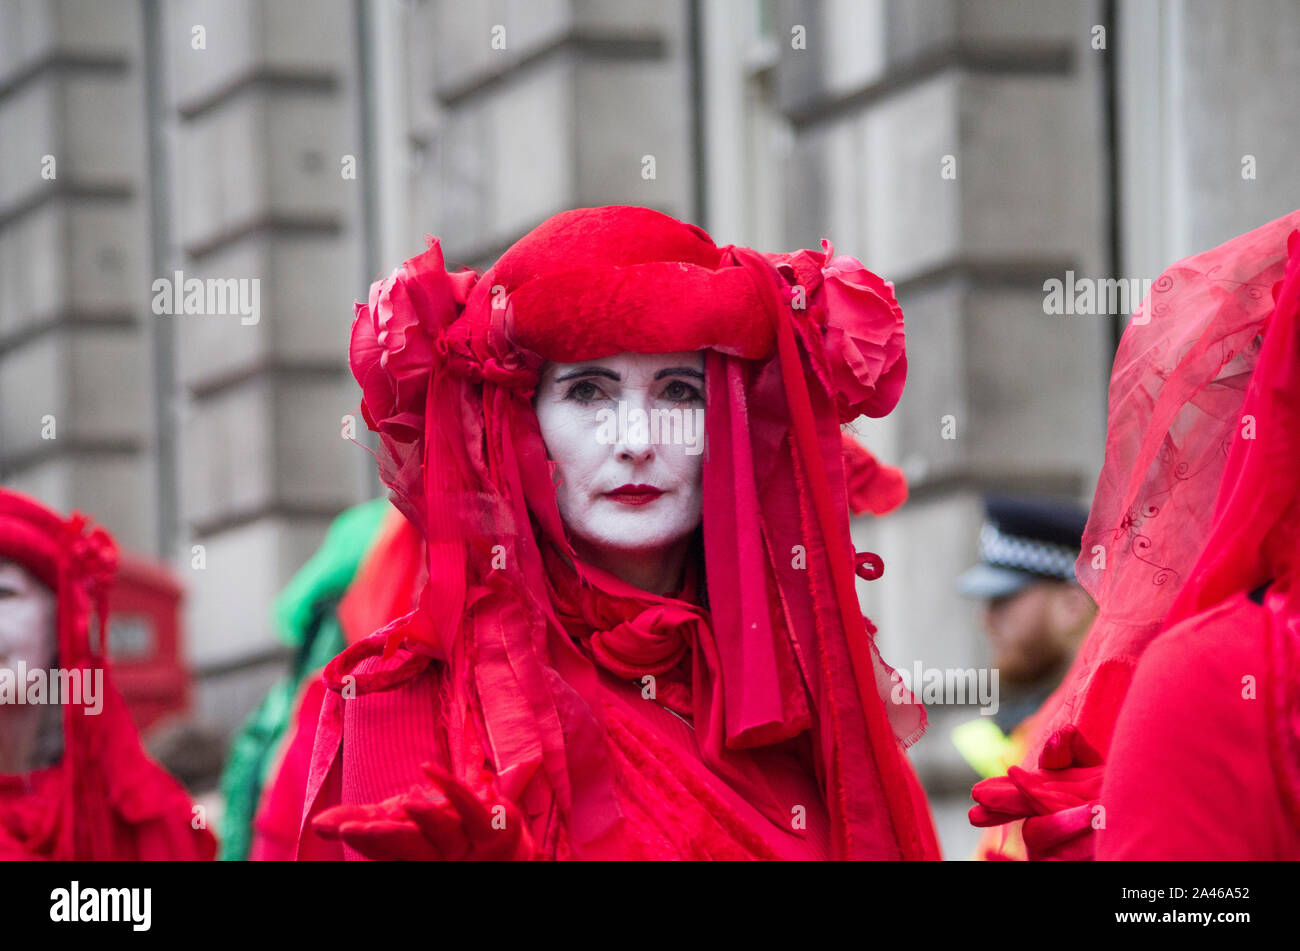 London, UK. 11 October 2019. Red-robed, Climate change protesters, The Red Brigade, from Extinction Rebellion walk along Whitehall in London. By day 5 protestors, still occupied Trafalgar Square despite many of their campsites around Westminster being removed by police. One of Extinction Rebellion's main demands is to reduce greenhouse gases to net zero by 2025. Over 1,000 arrests were made in the first week. 500 officers were drafted in from around England and Wales to help support the Metropolitan police. Stuart Walden / Alamy Stock Photo